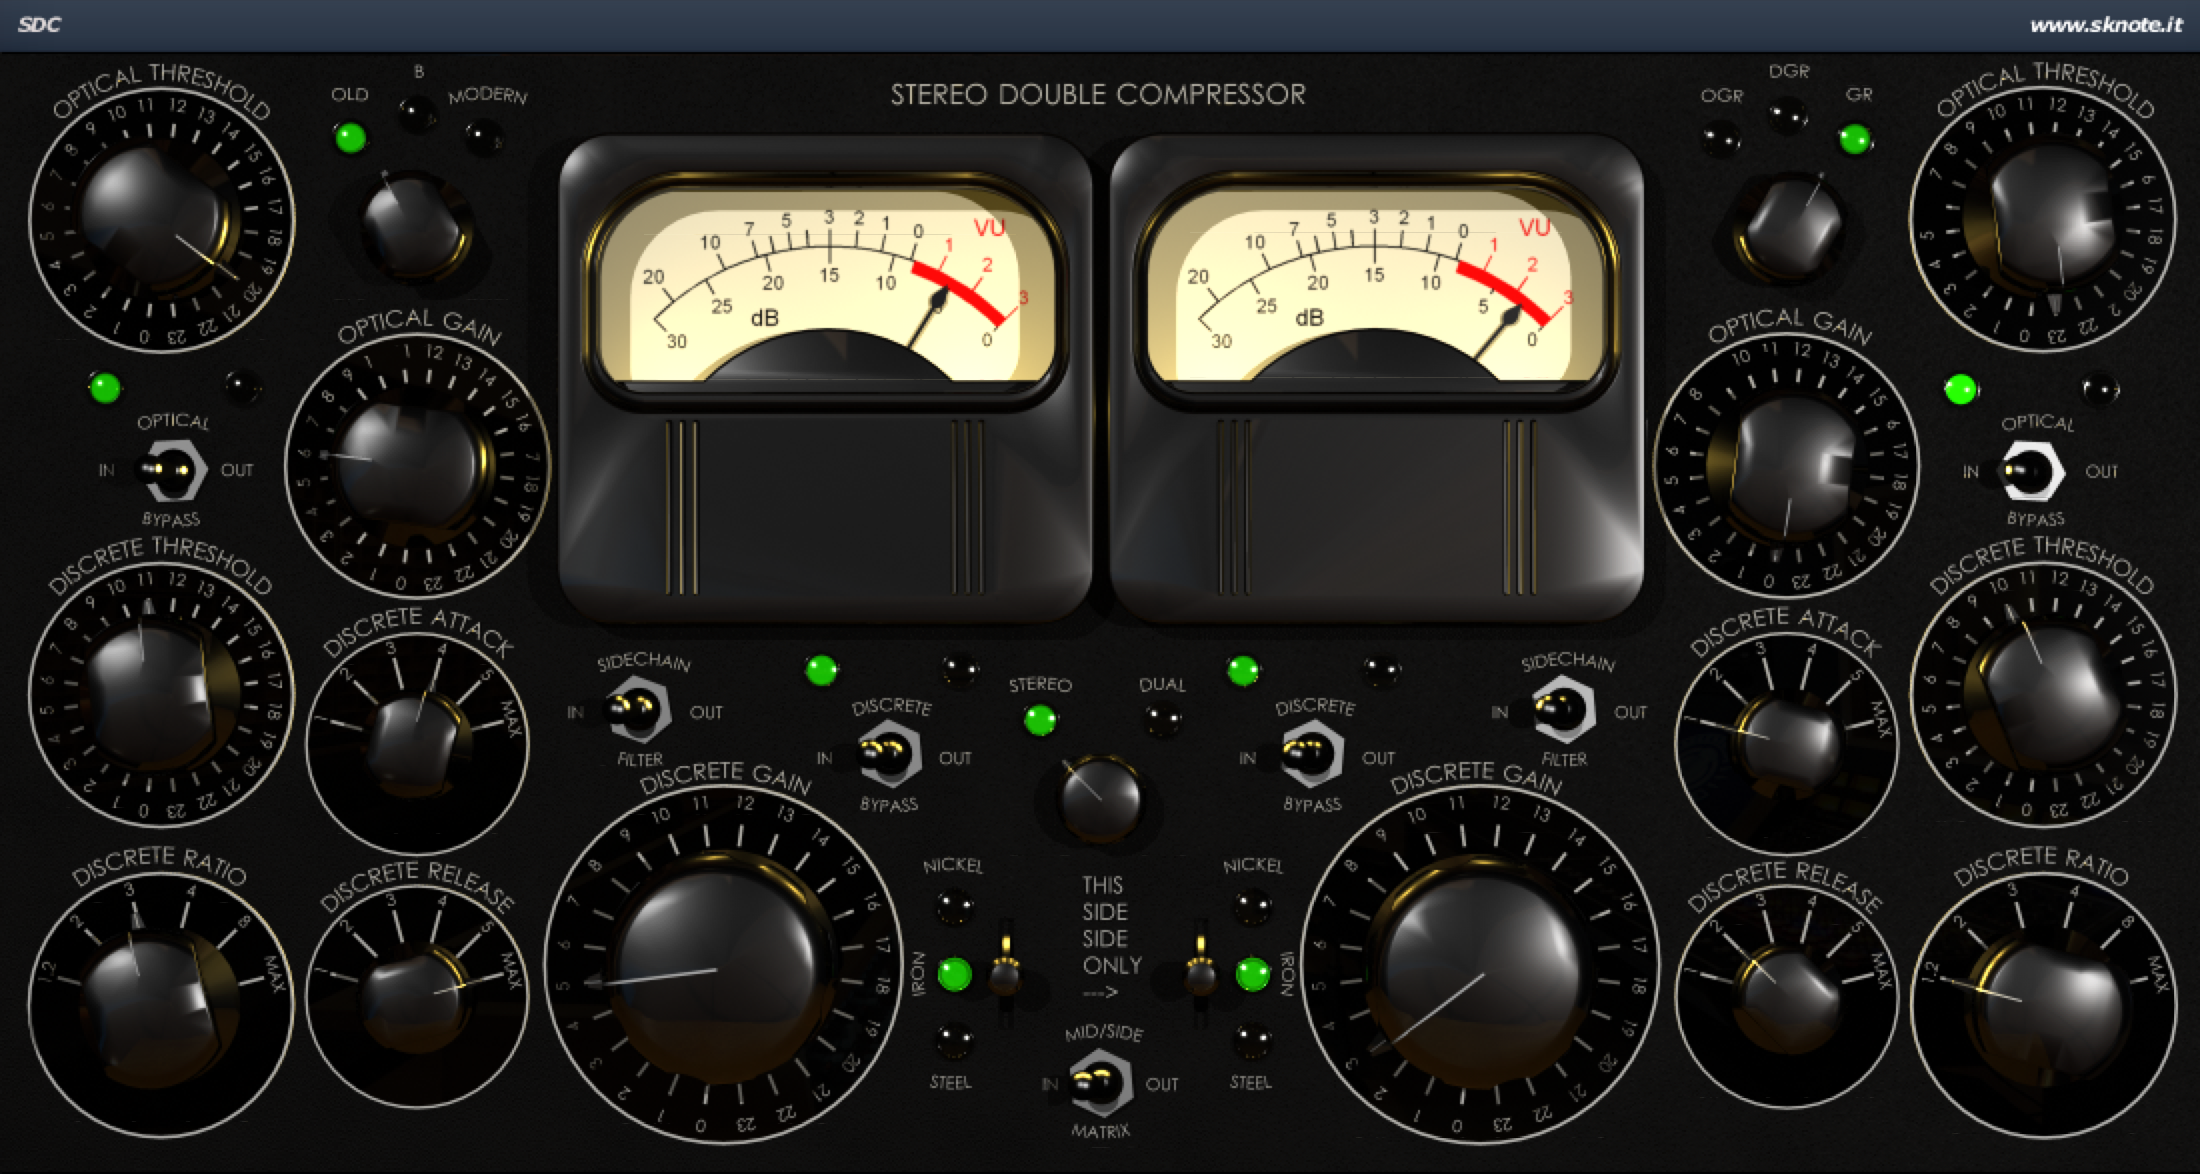 SDC MS Mastering Trance Interface